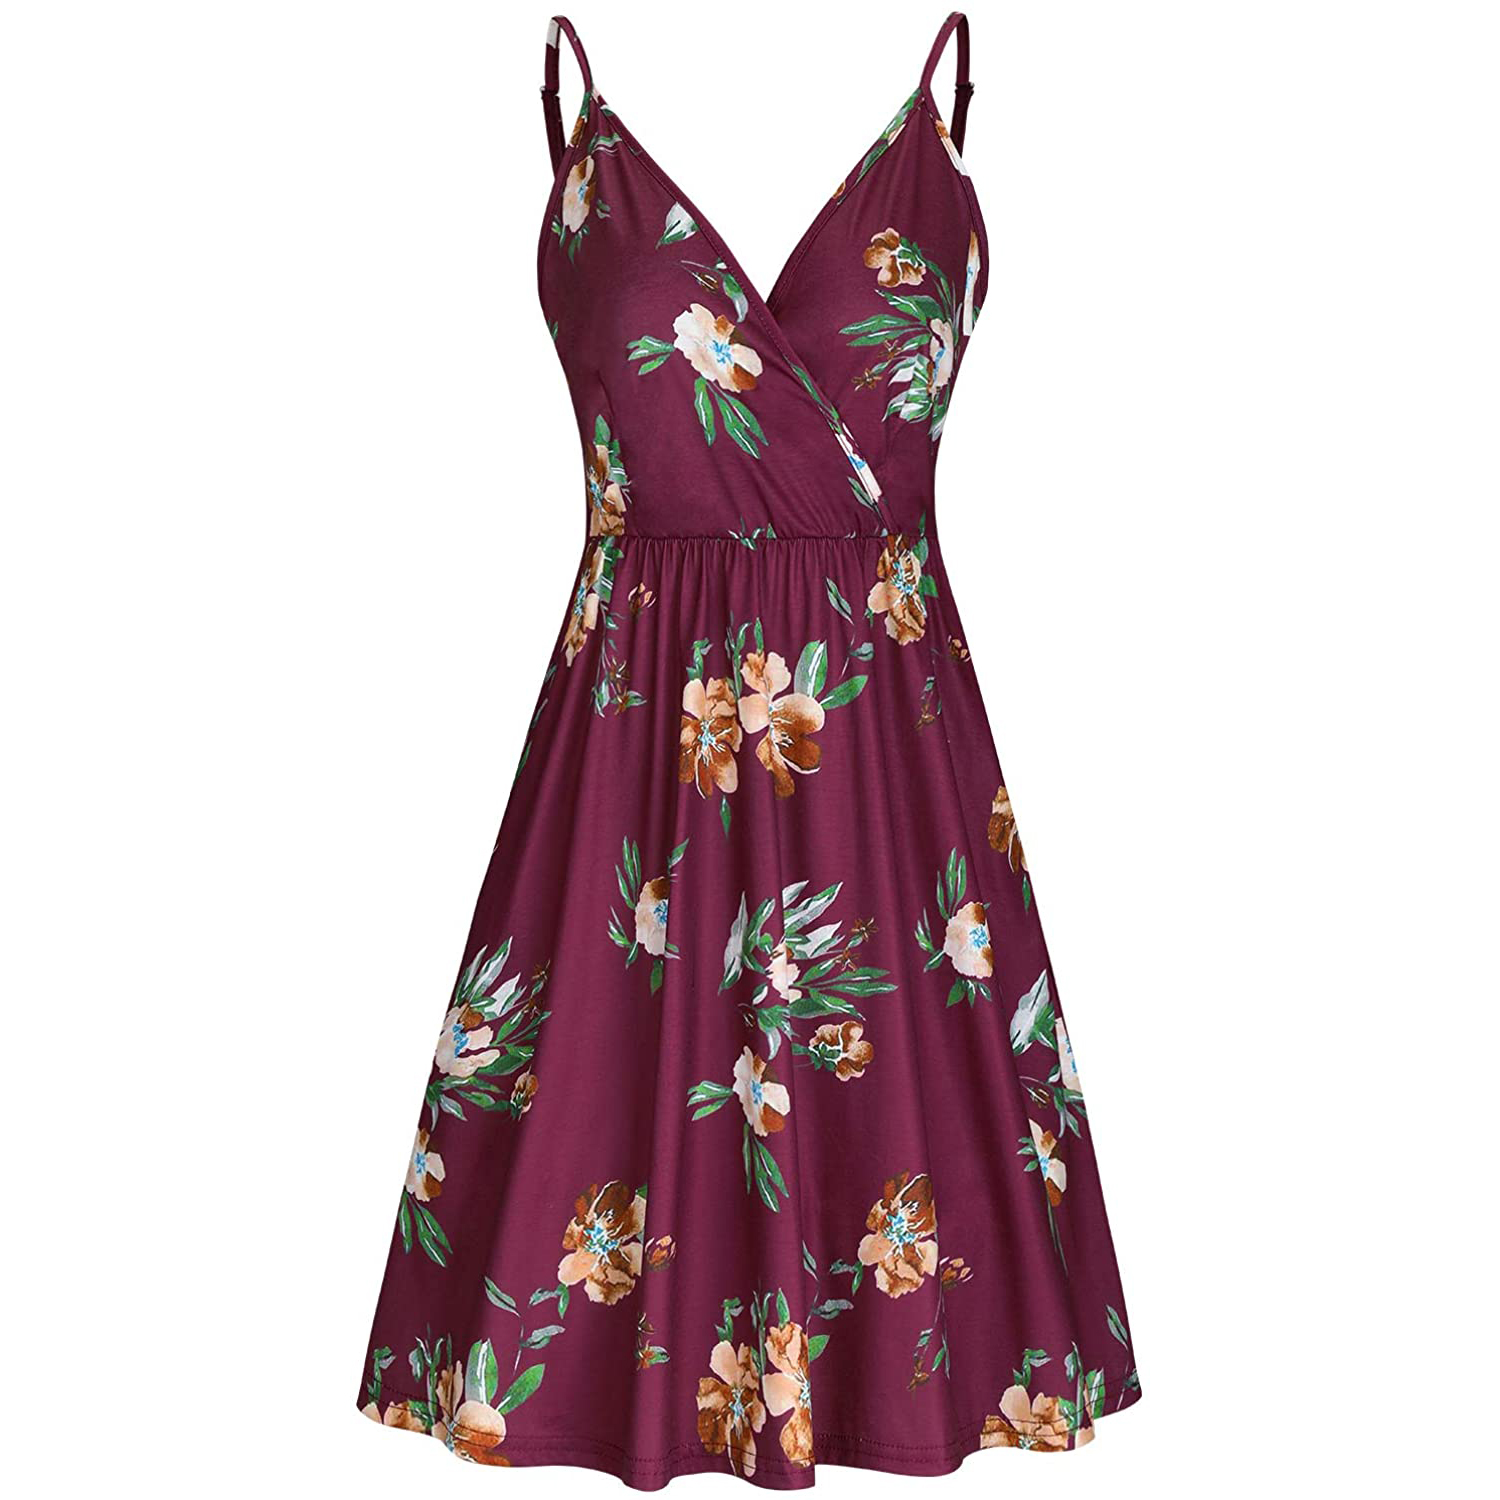 V Neck Floral Spaghetti Strap Summer Casual Swing Dress with Pocket